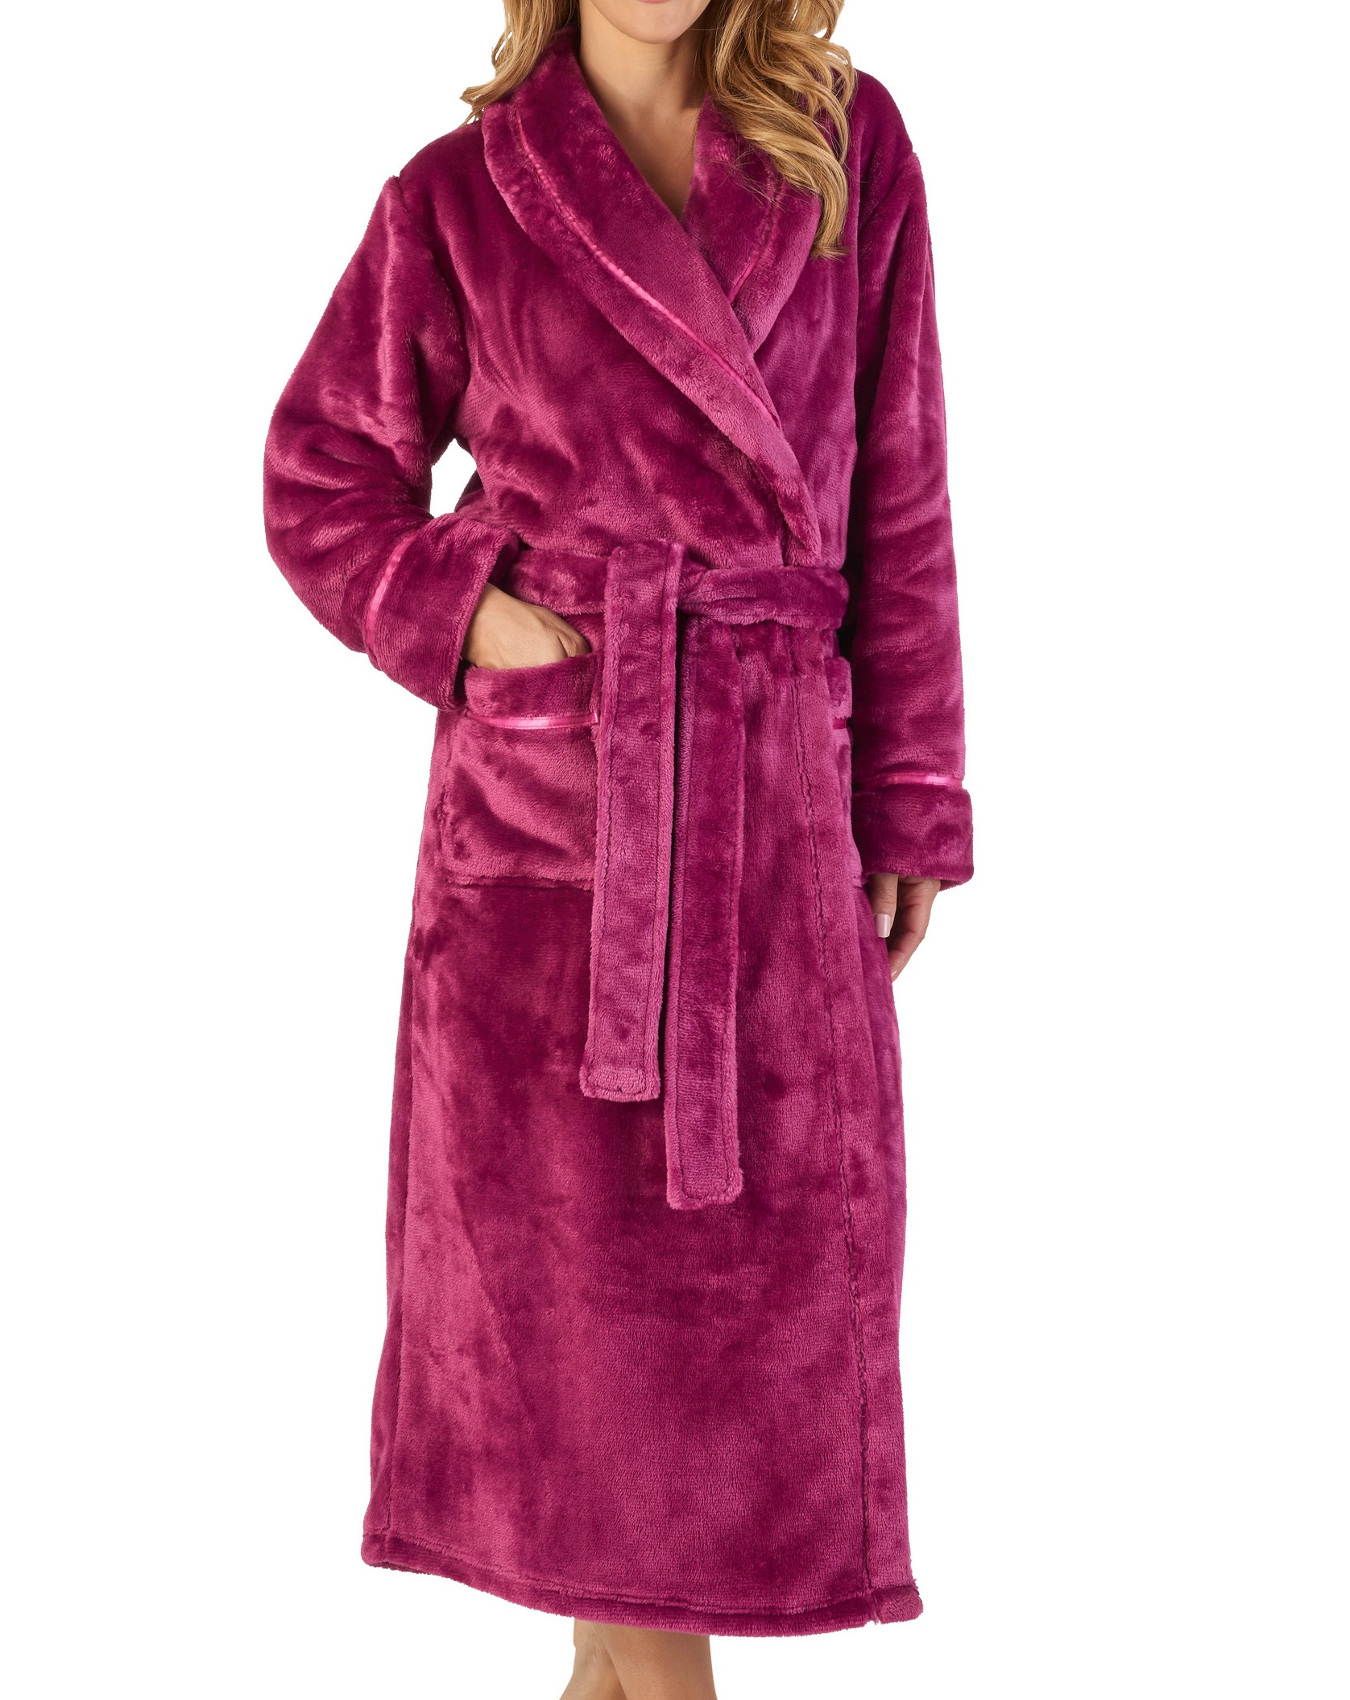 0d5a87591d Slenderella Womens Luxury Thick Flannel Fleece Dressing Gown Shawl ...